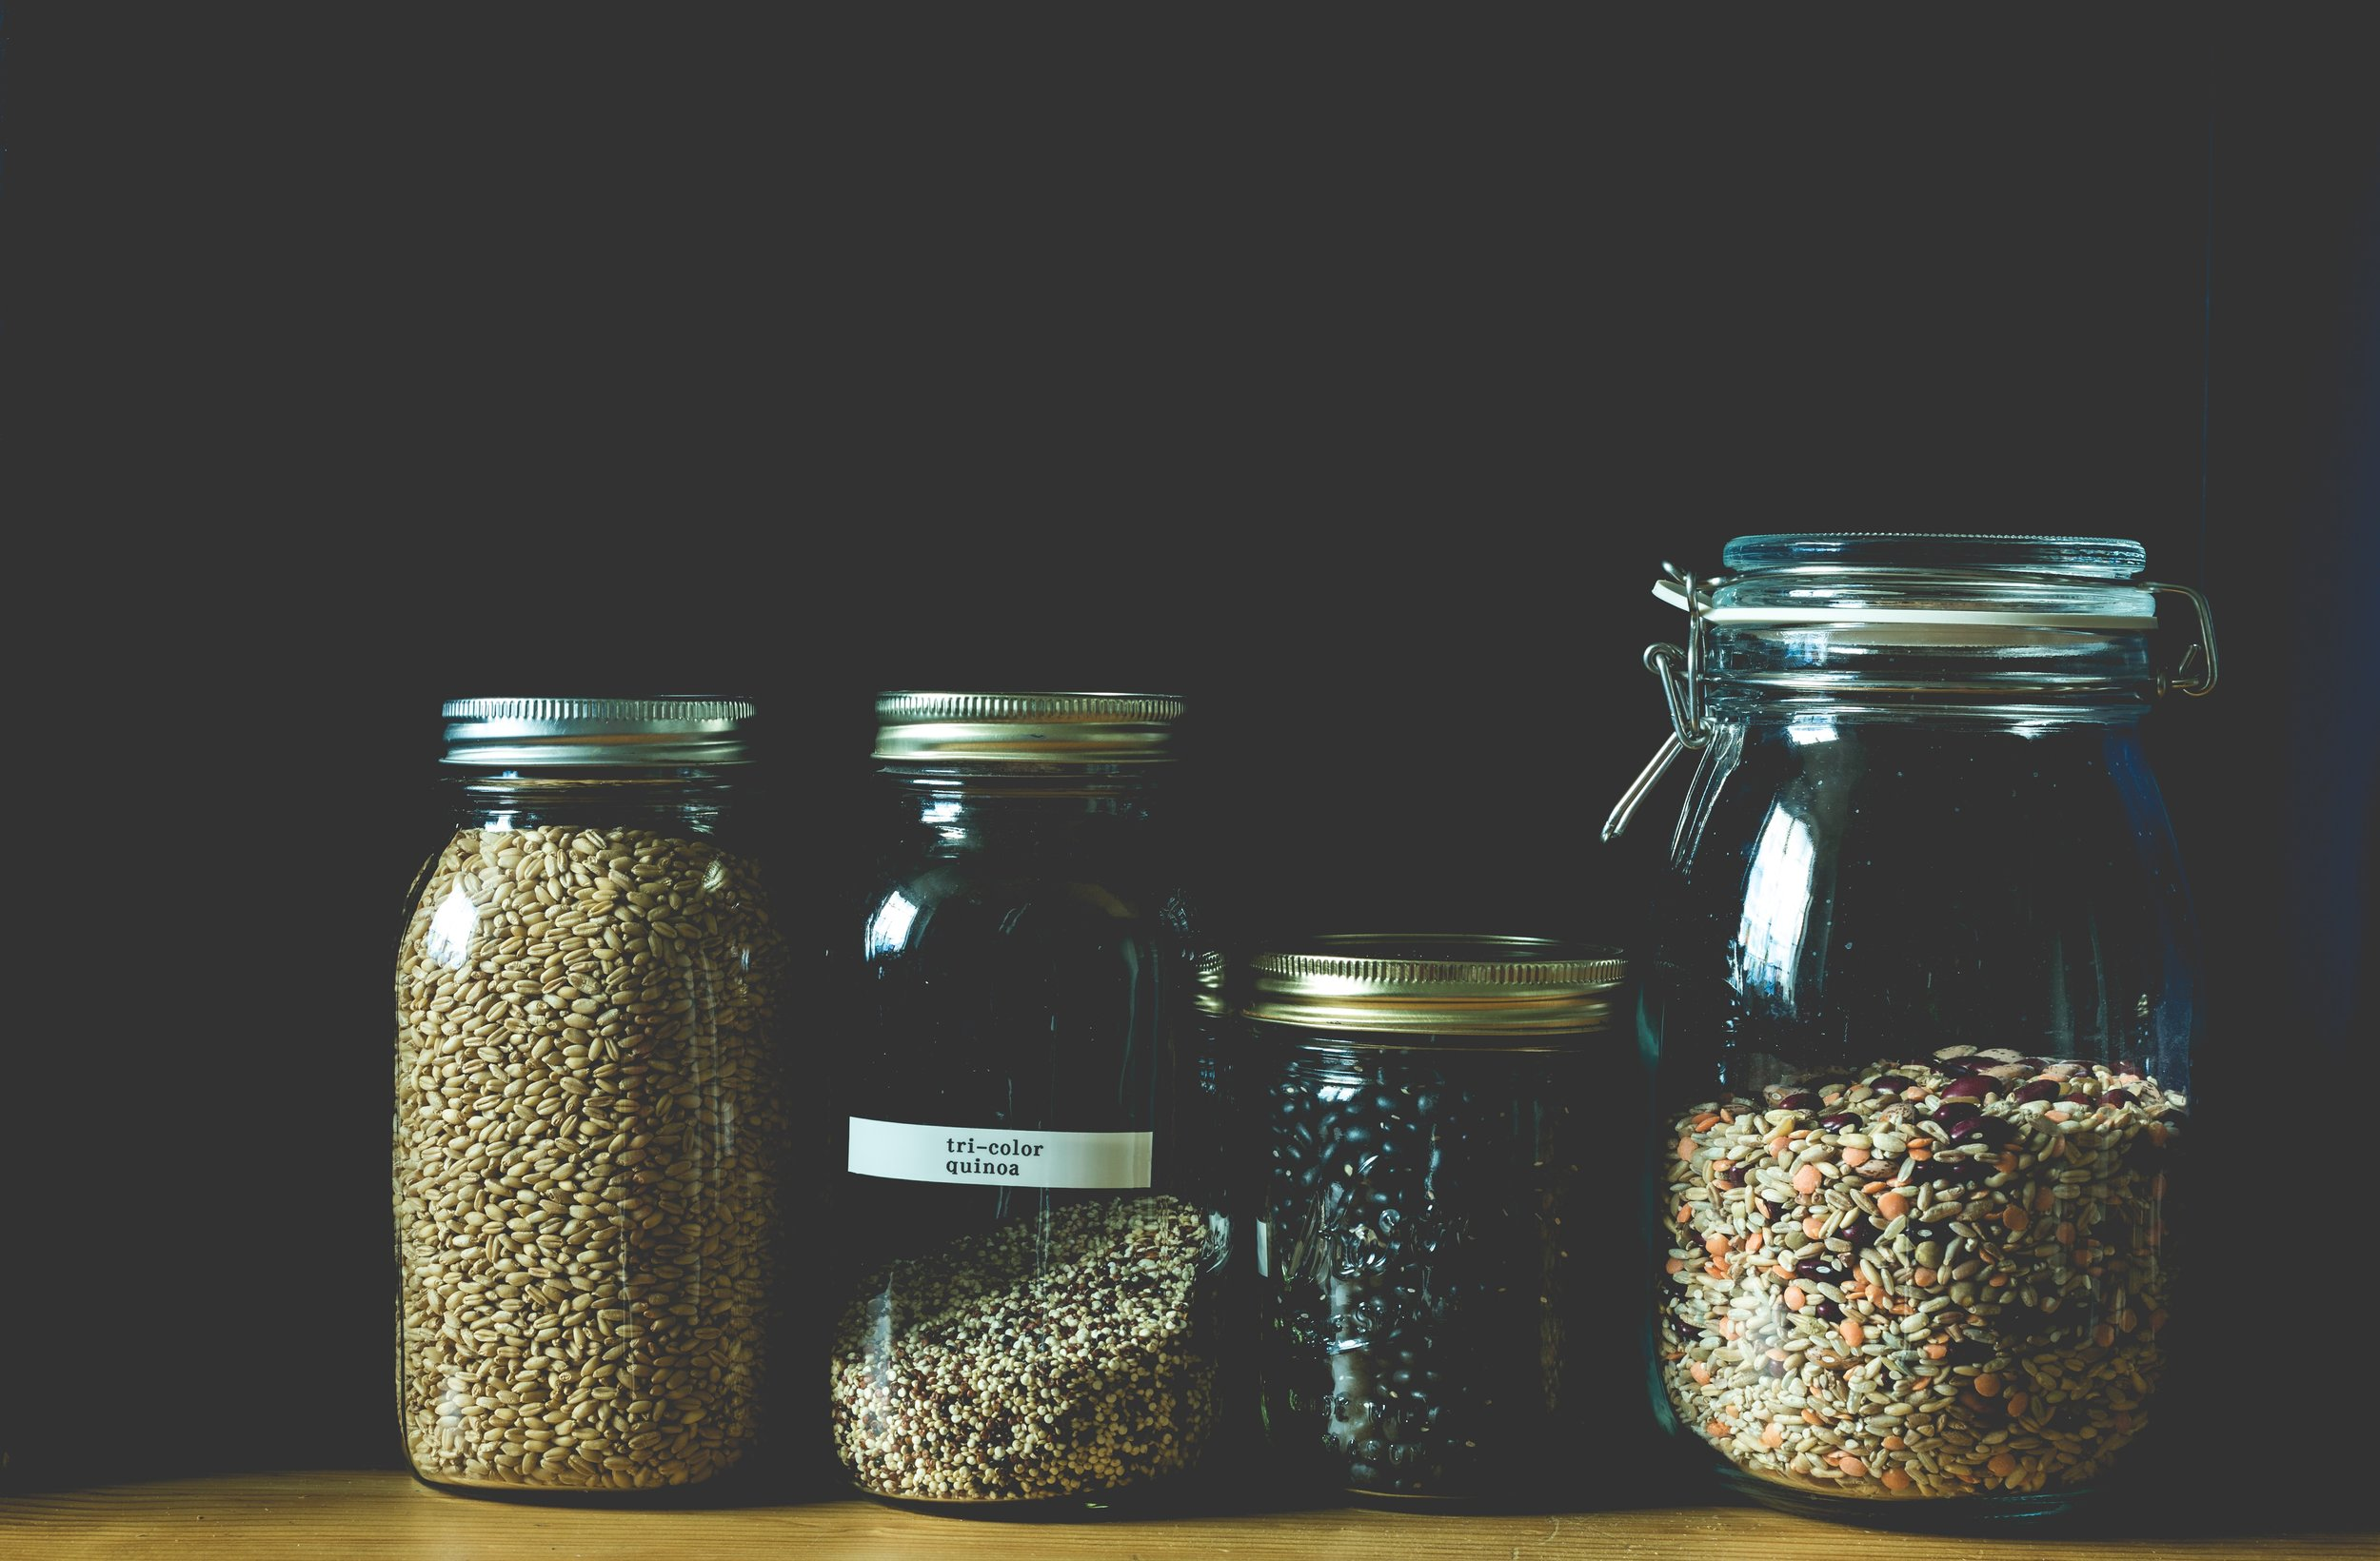 pantry + fridge makeover - Need your pantry revamped? Want the nutrition experts to take a look at those nutrition labels with you? We'll take 1 hour to sort through your pantry and fridge to identify areas of your food space that could use a nutrition upgrade.